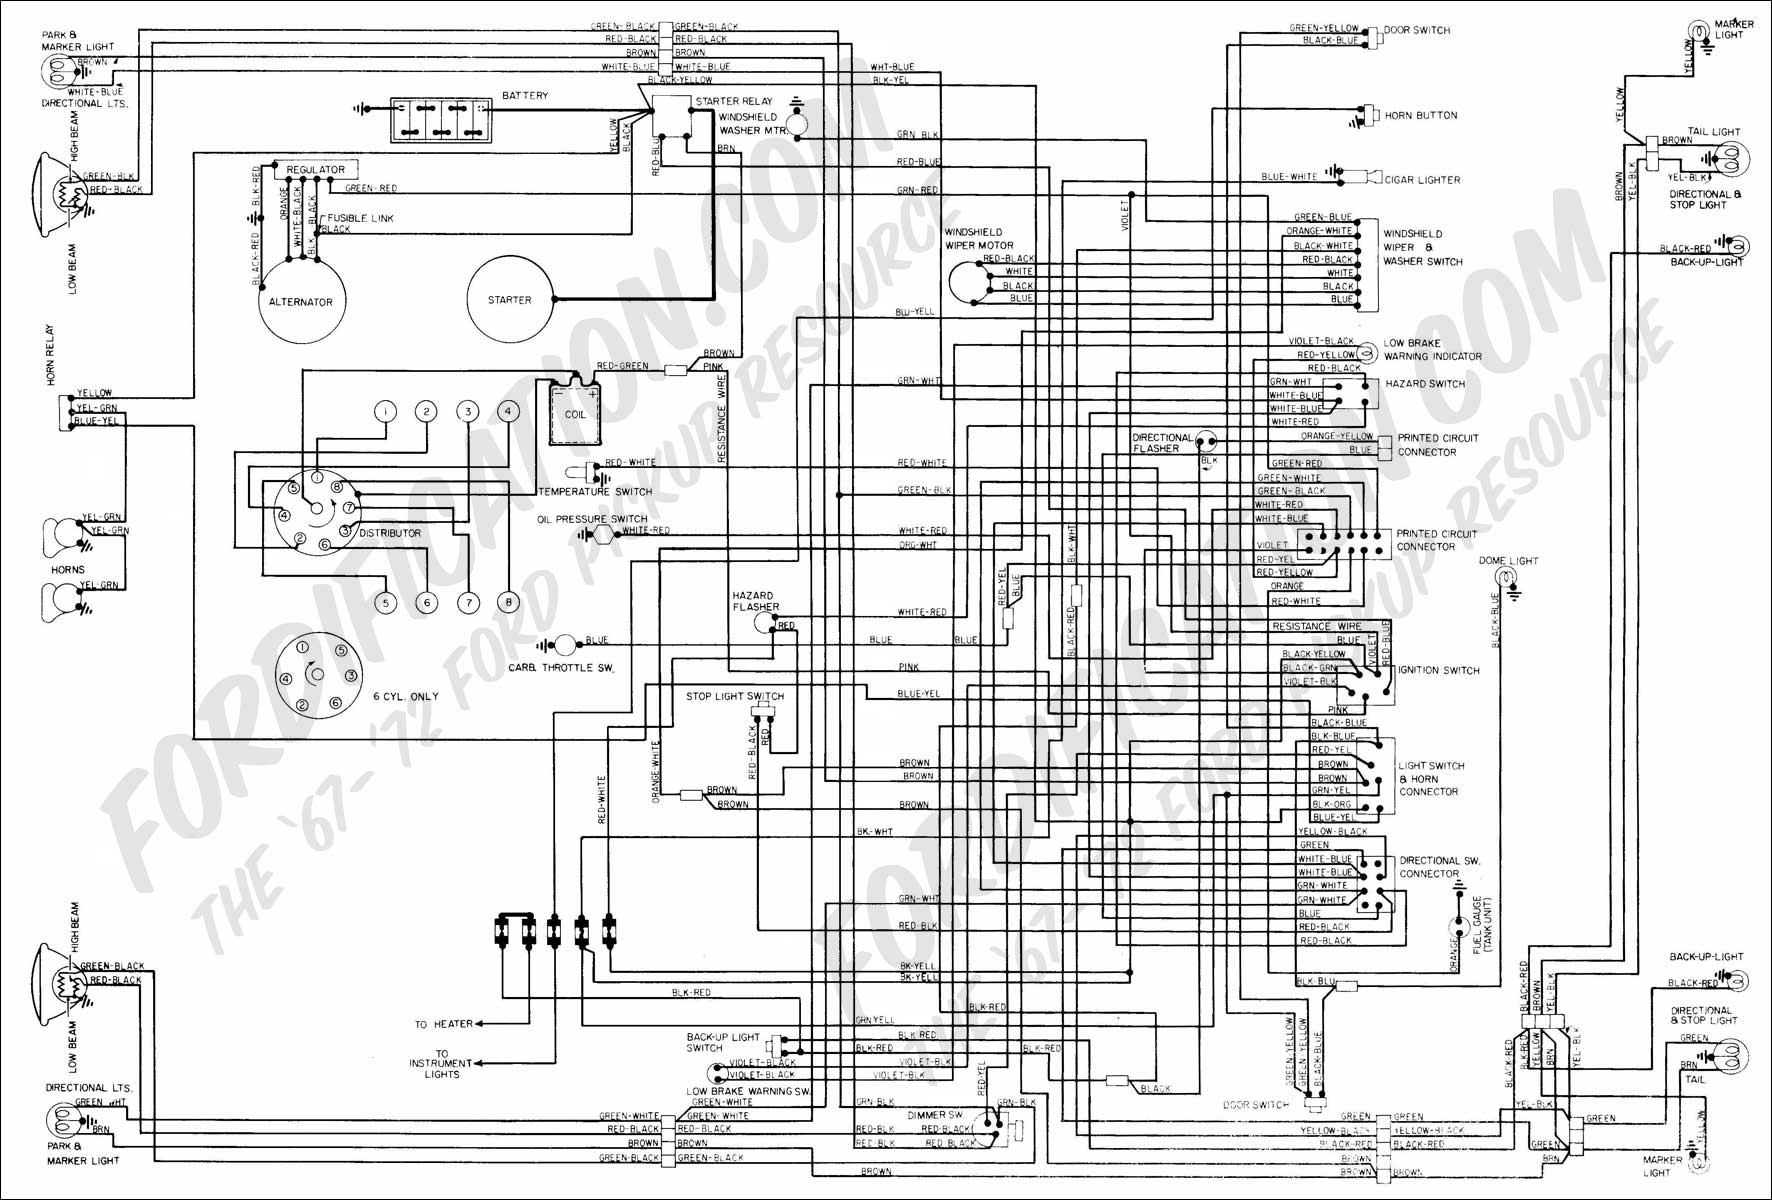 2001 F350 Wiring Diagram Trusted Schematics 1991 Ford F 350 Glow Plug Detailed Spark Plugs